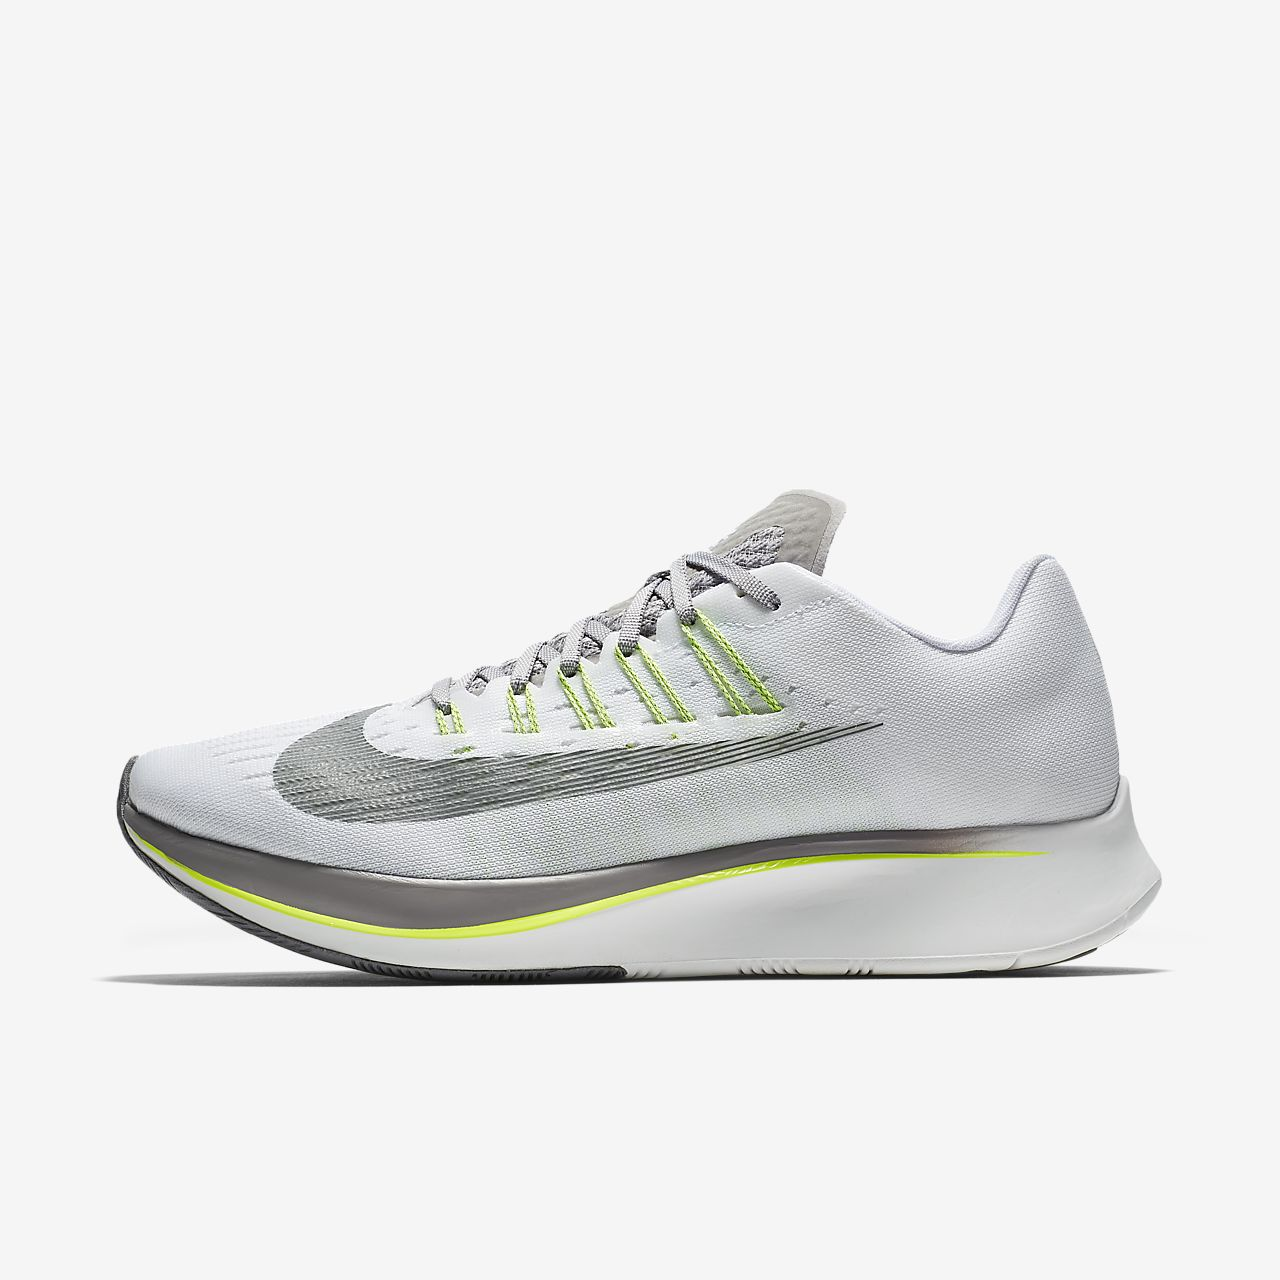 6db57d47f06758 Nike Zoom Fly Men s Running Shoe. Nike.com